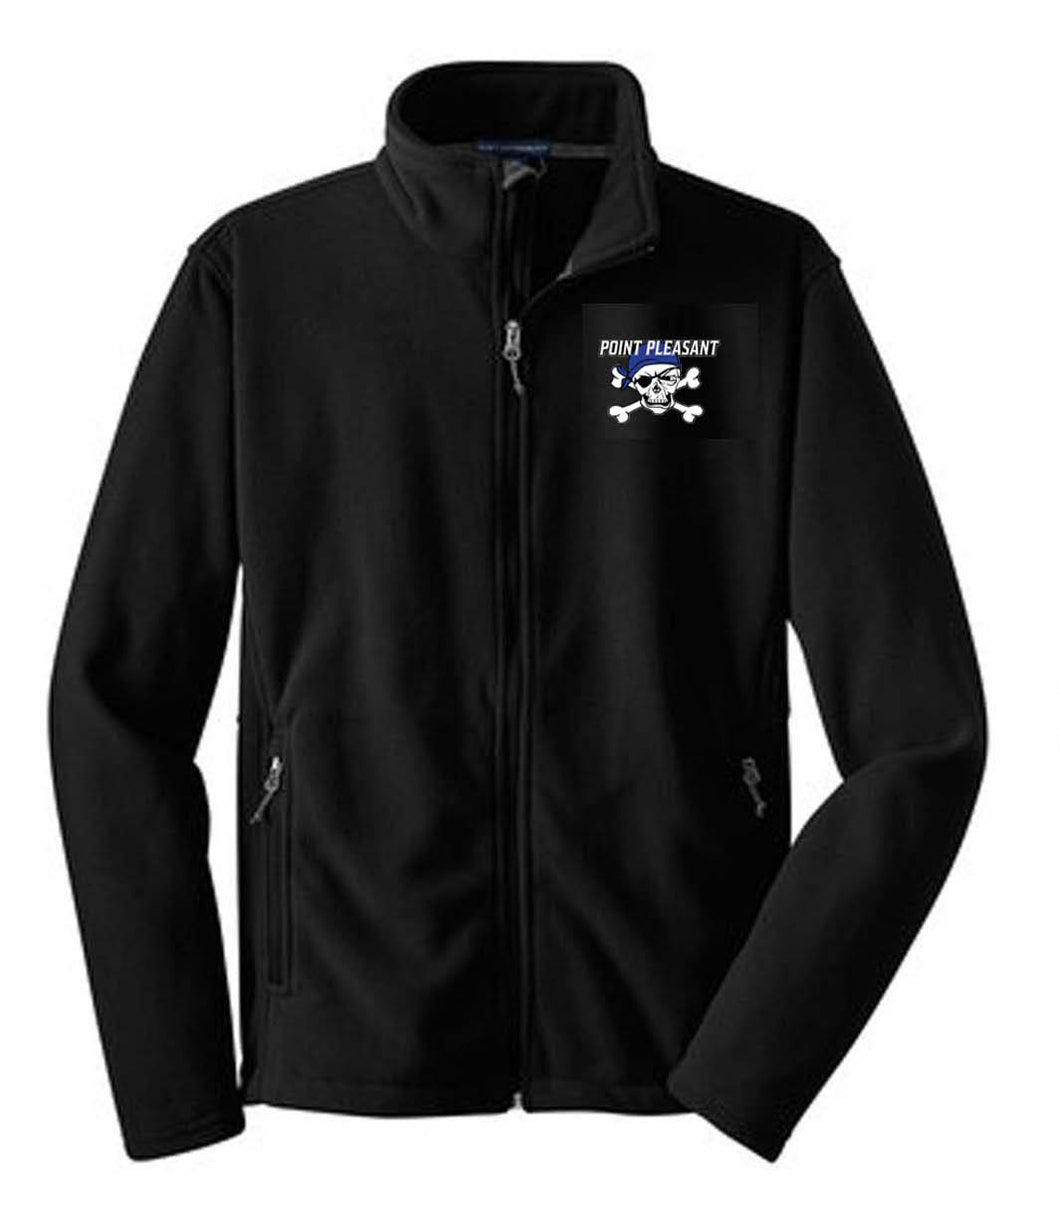 Football and Cheer Fleece Jacket with Embroidery